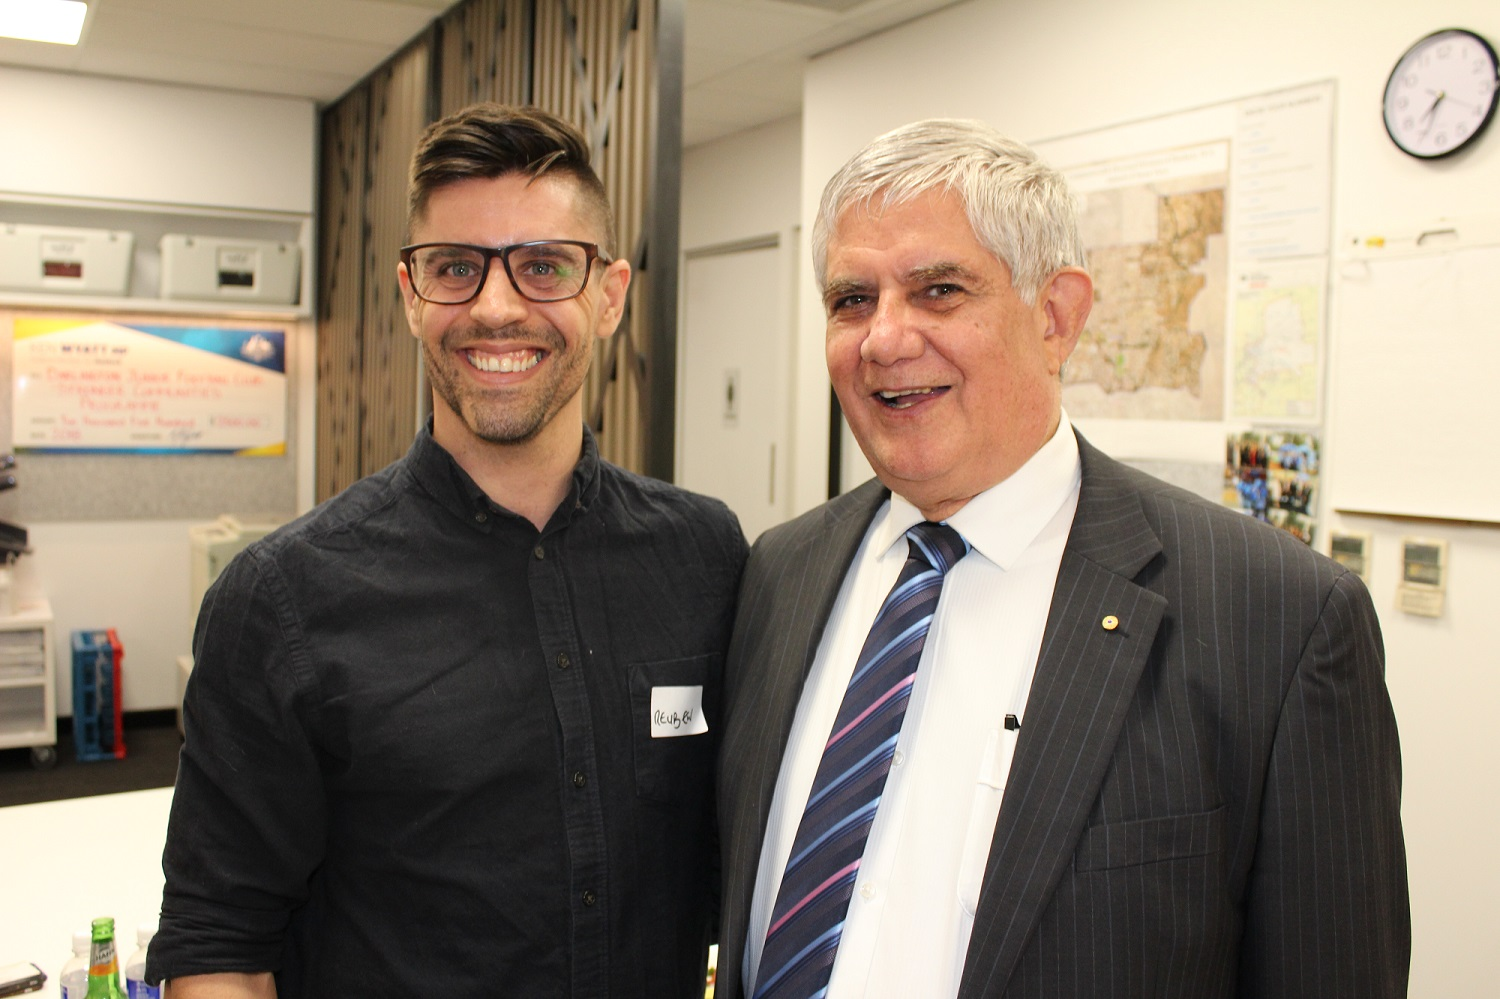 Reuben Adams, Forrestfield - Ken is genuine, approachable and someone that cares about his community.